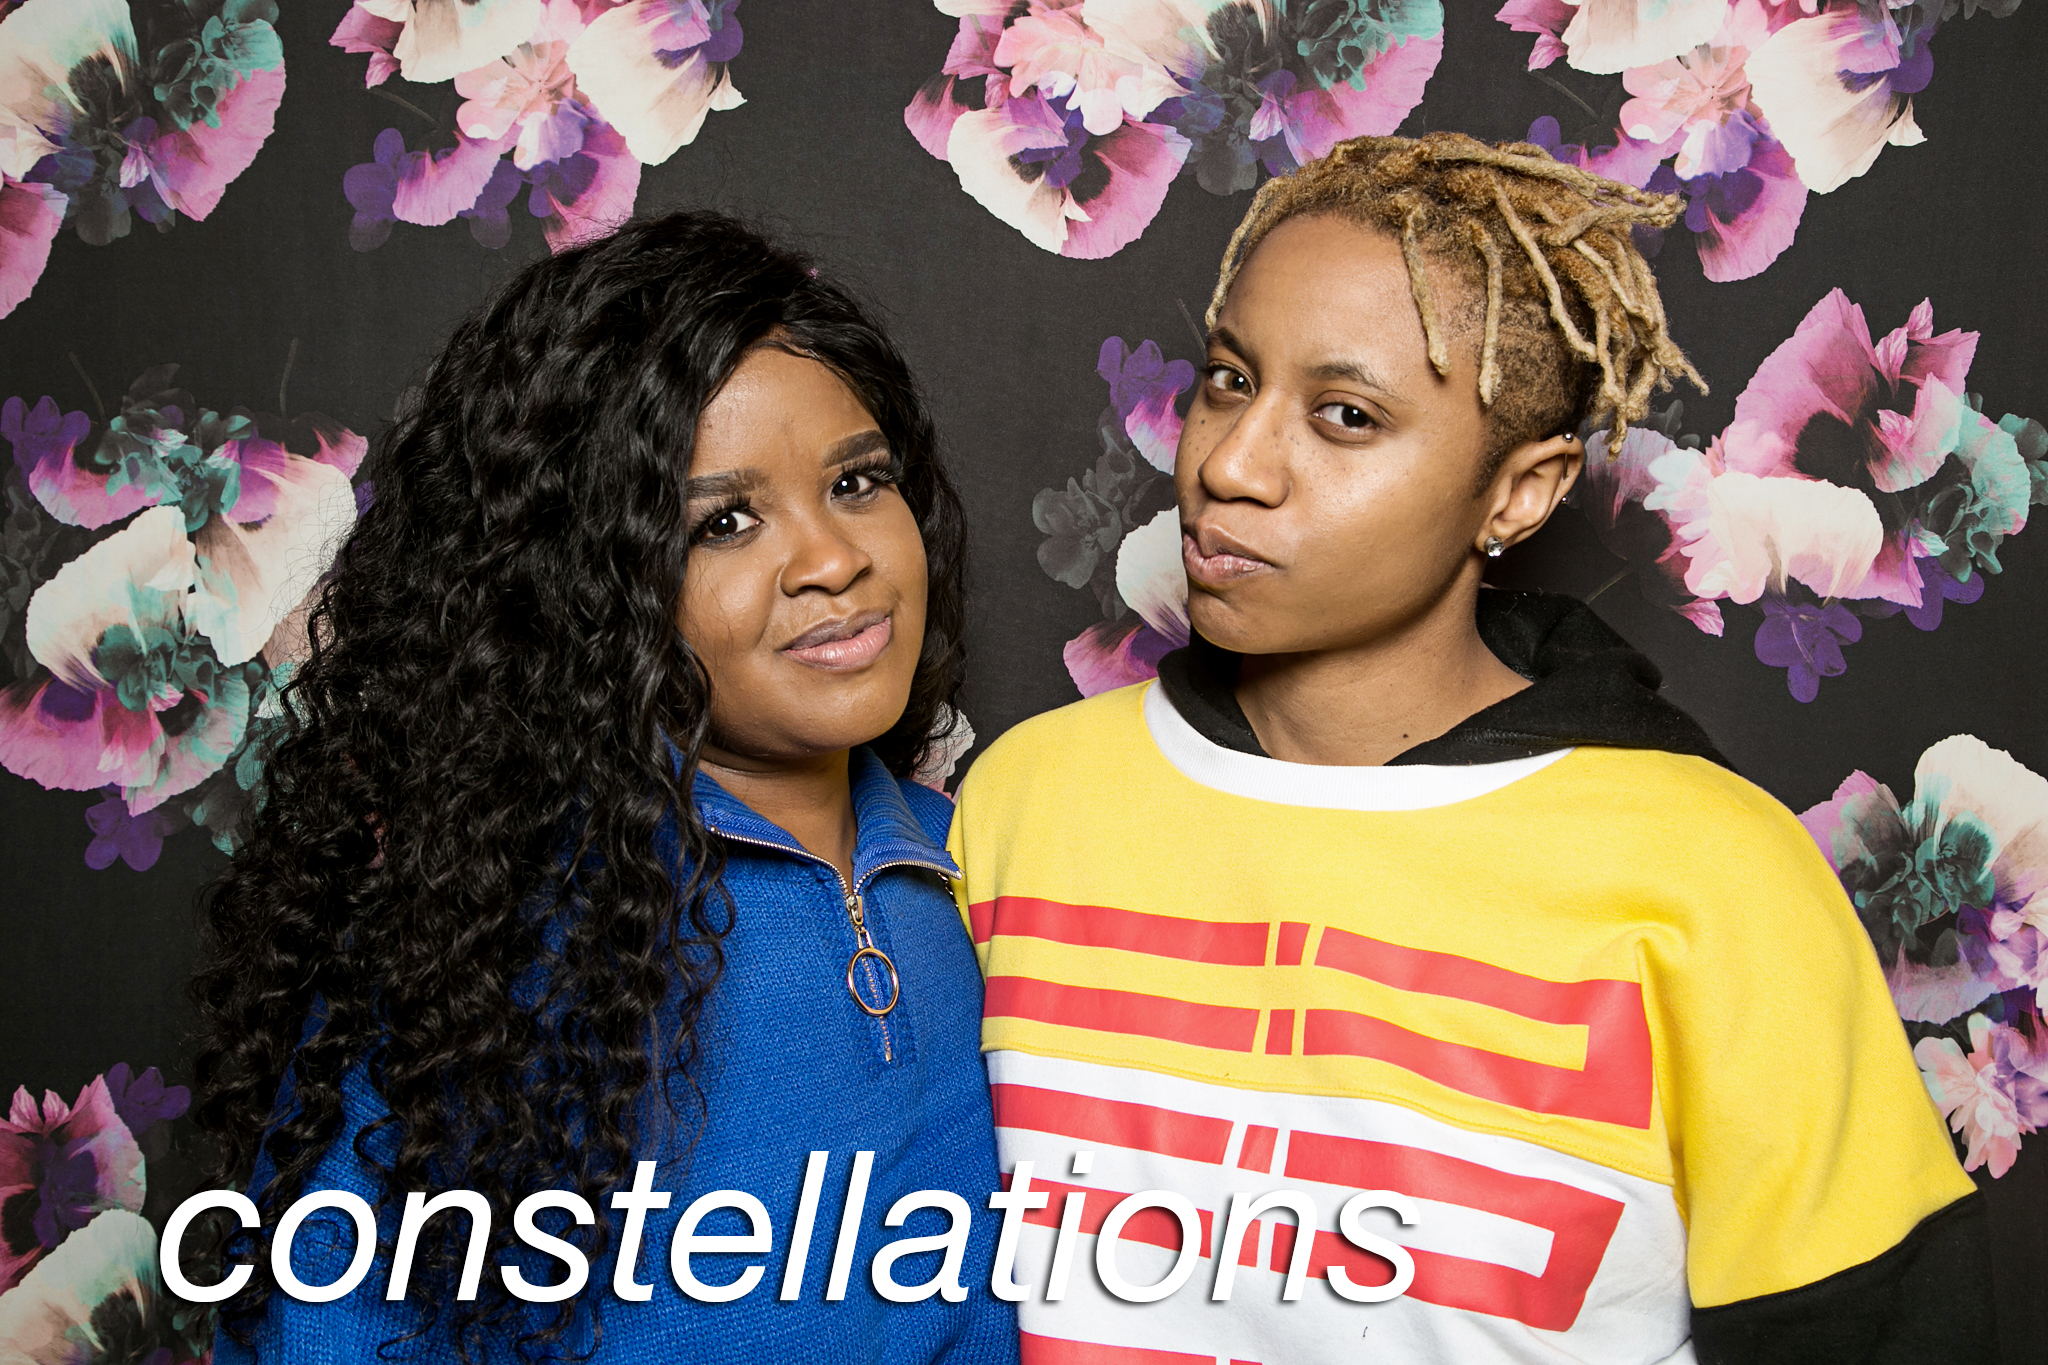 glitterguts portrait booth photos from constellations at beauty bar chicago, december 2019